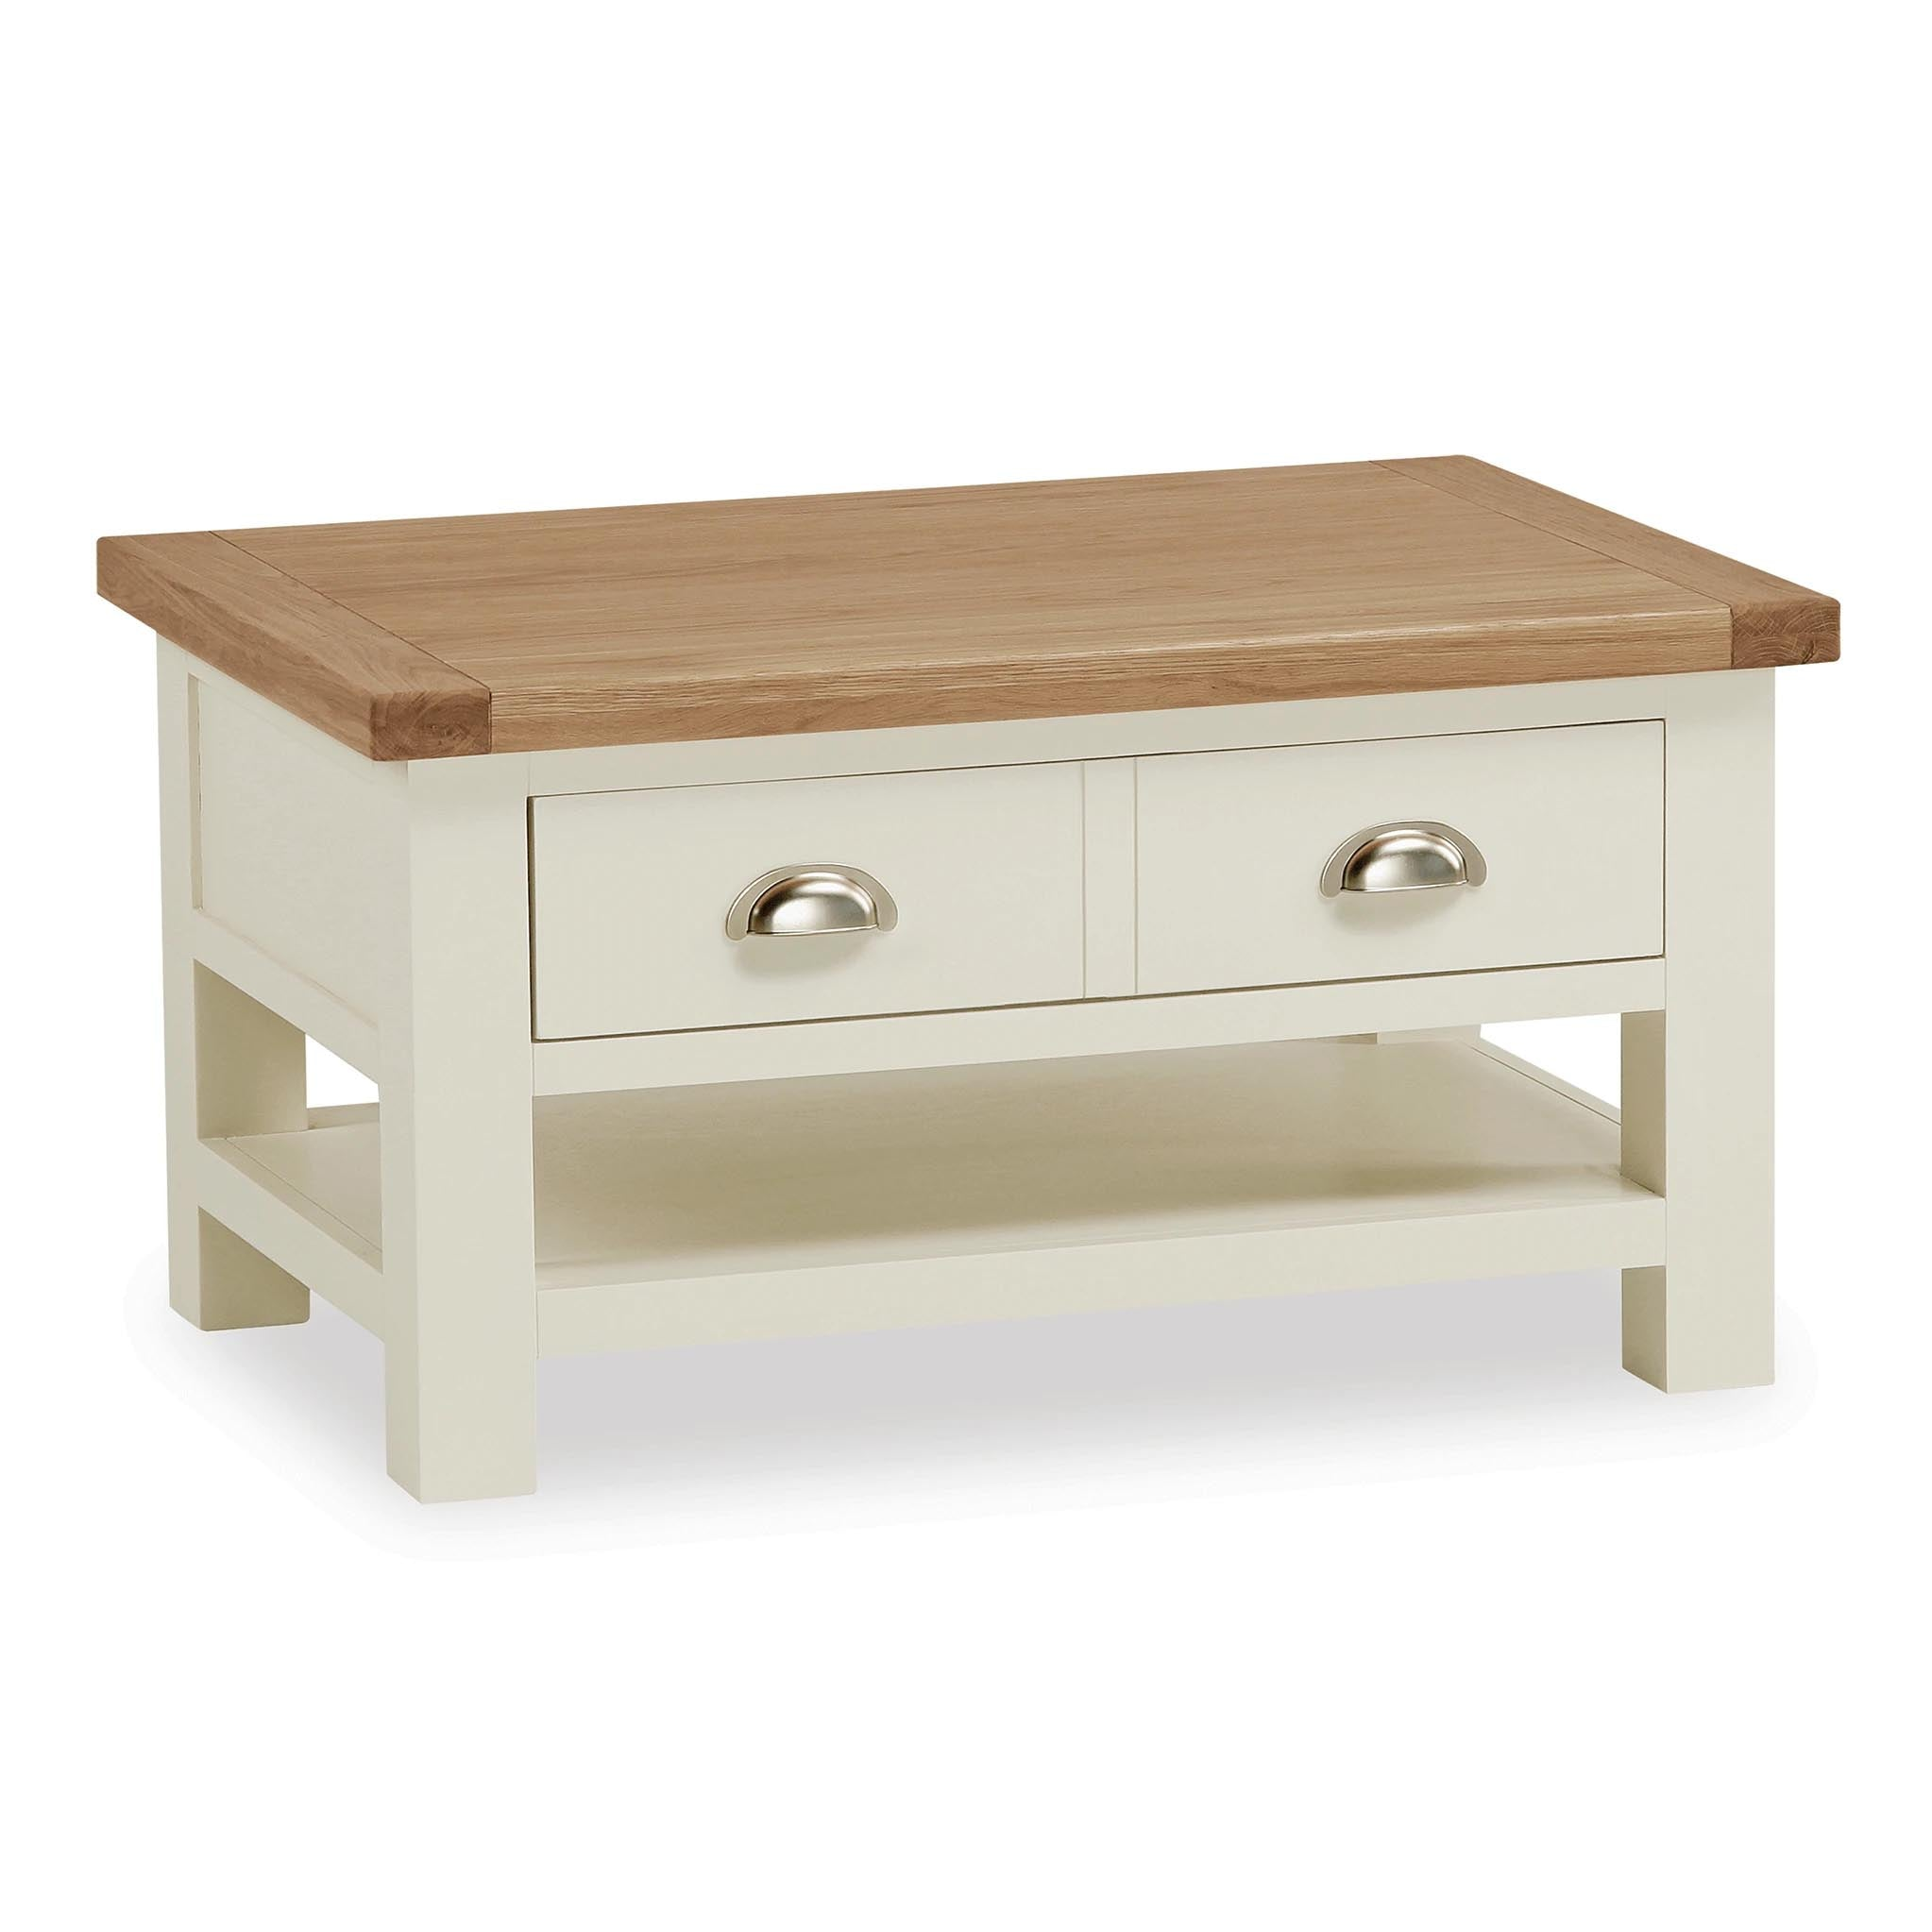 - Daymer Cream Painted Small Coffee Table With Drawers Oak